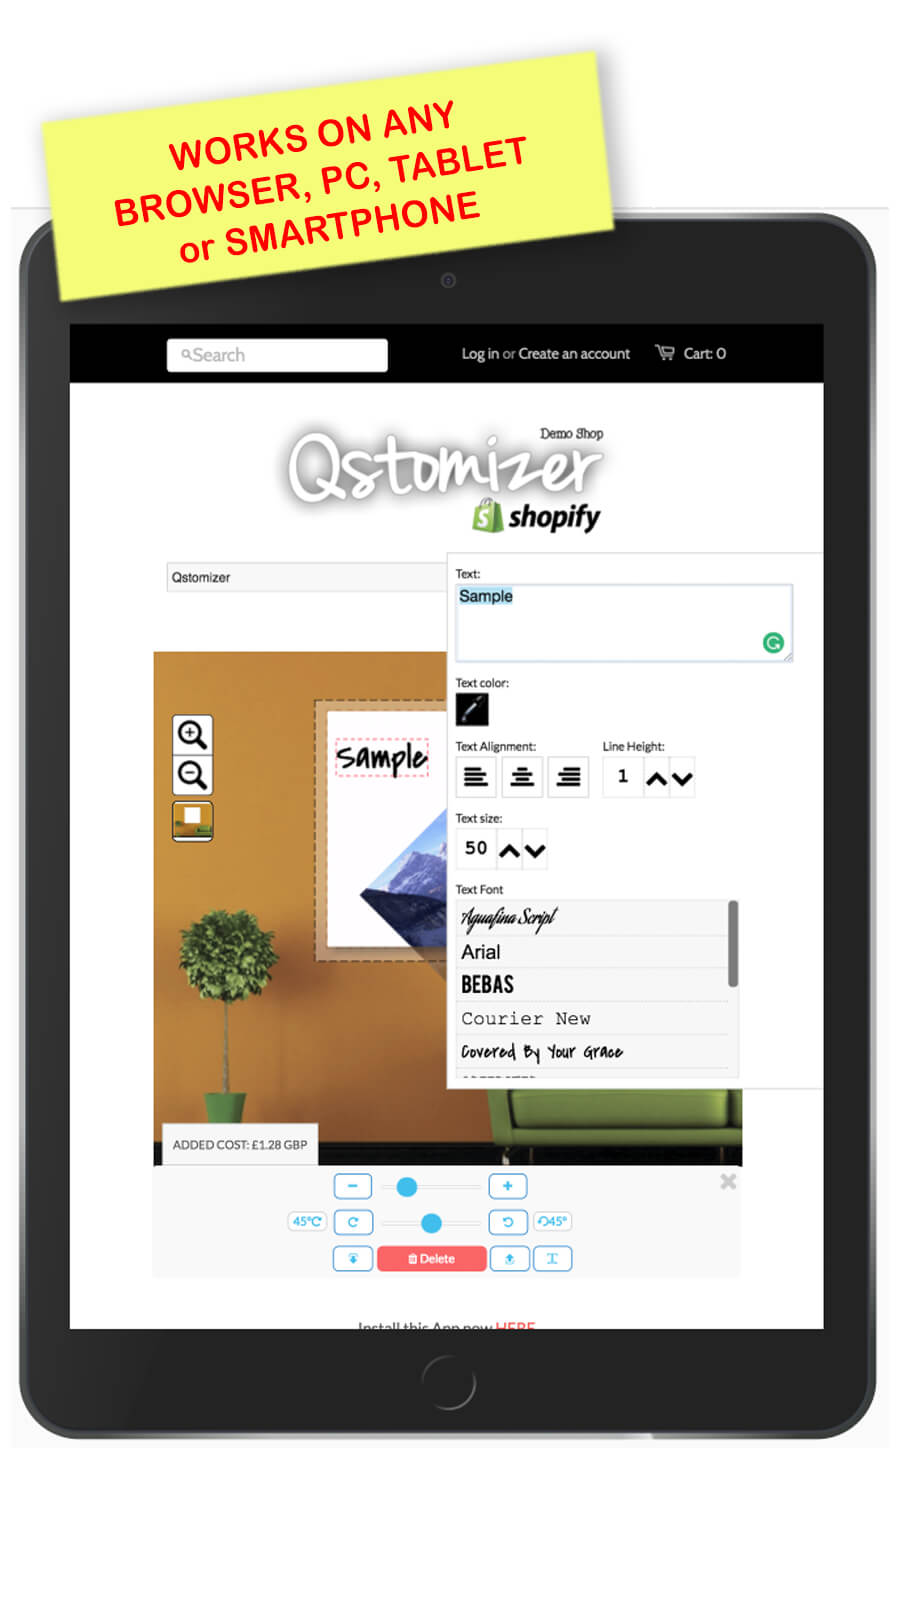 Qstomizer works on any PC, tablet or smartphone